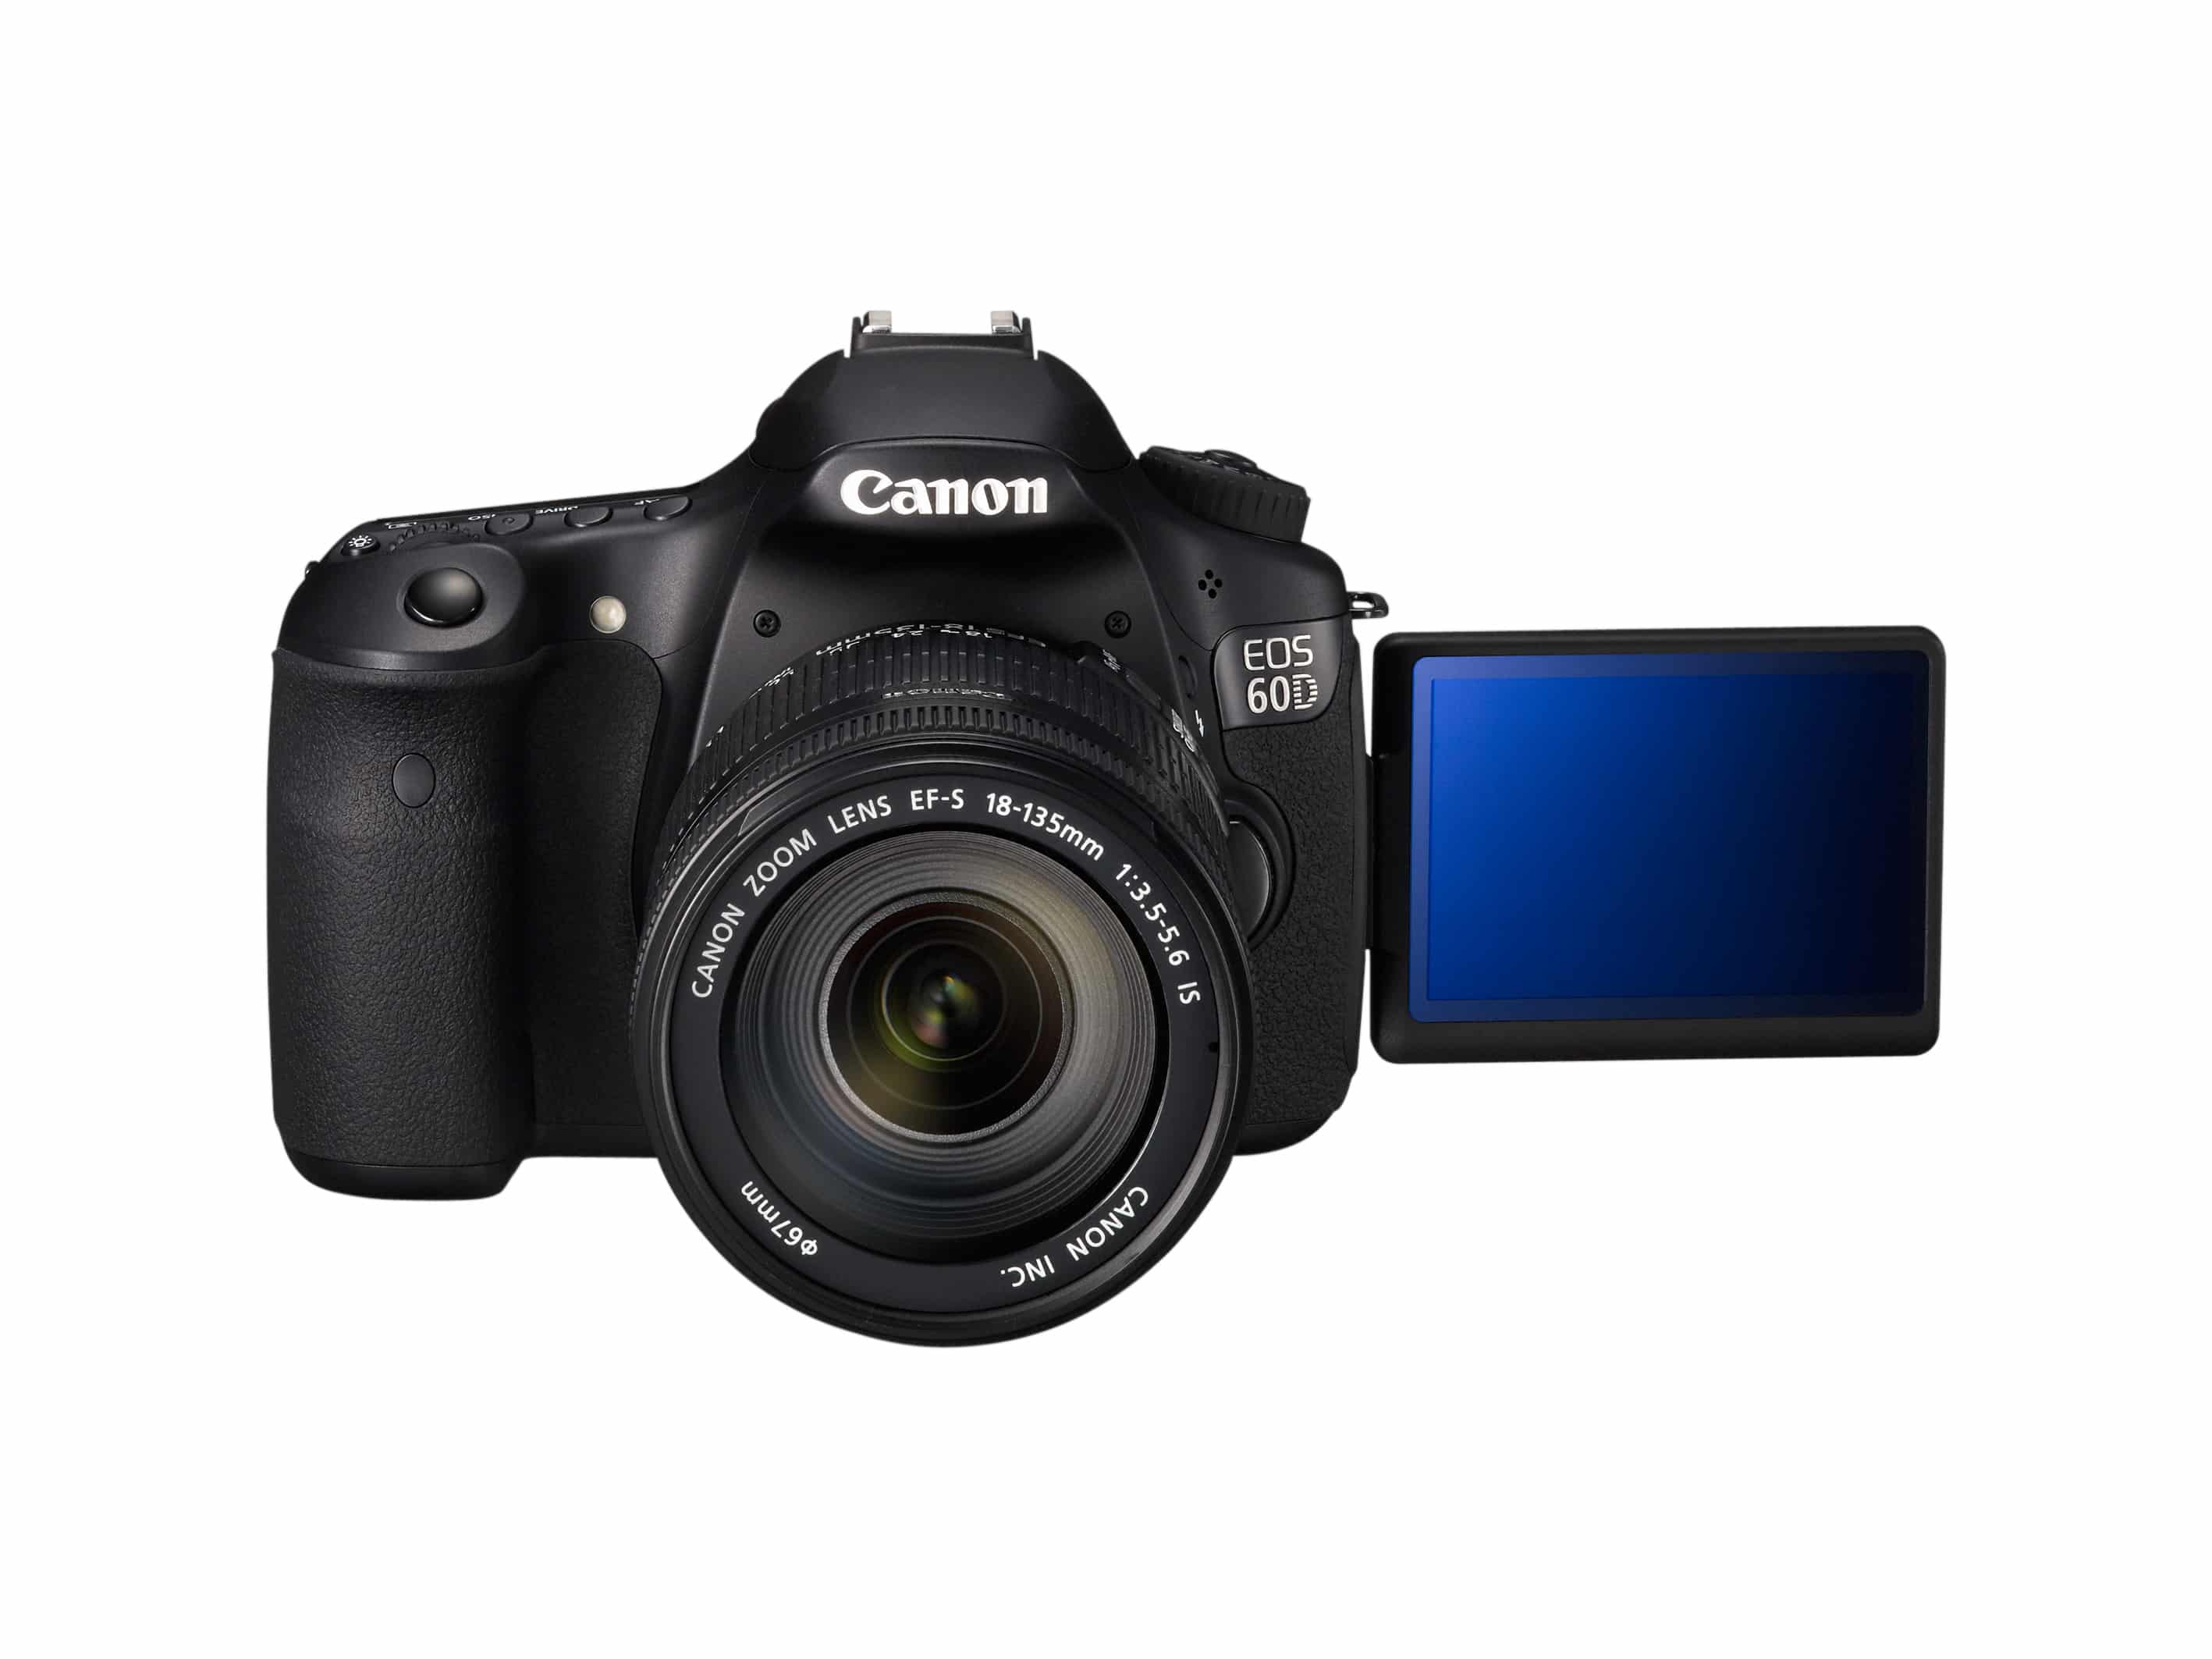 Though the 60D is the cheapest model of the 3 it definitely offers the best LCD screen by being the only one to be totally articulated